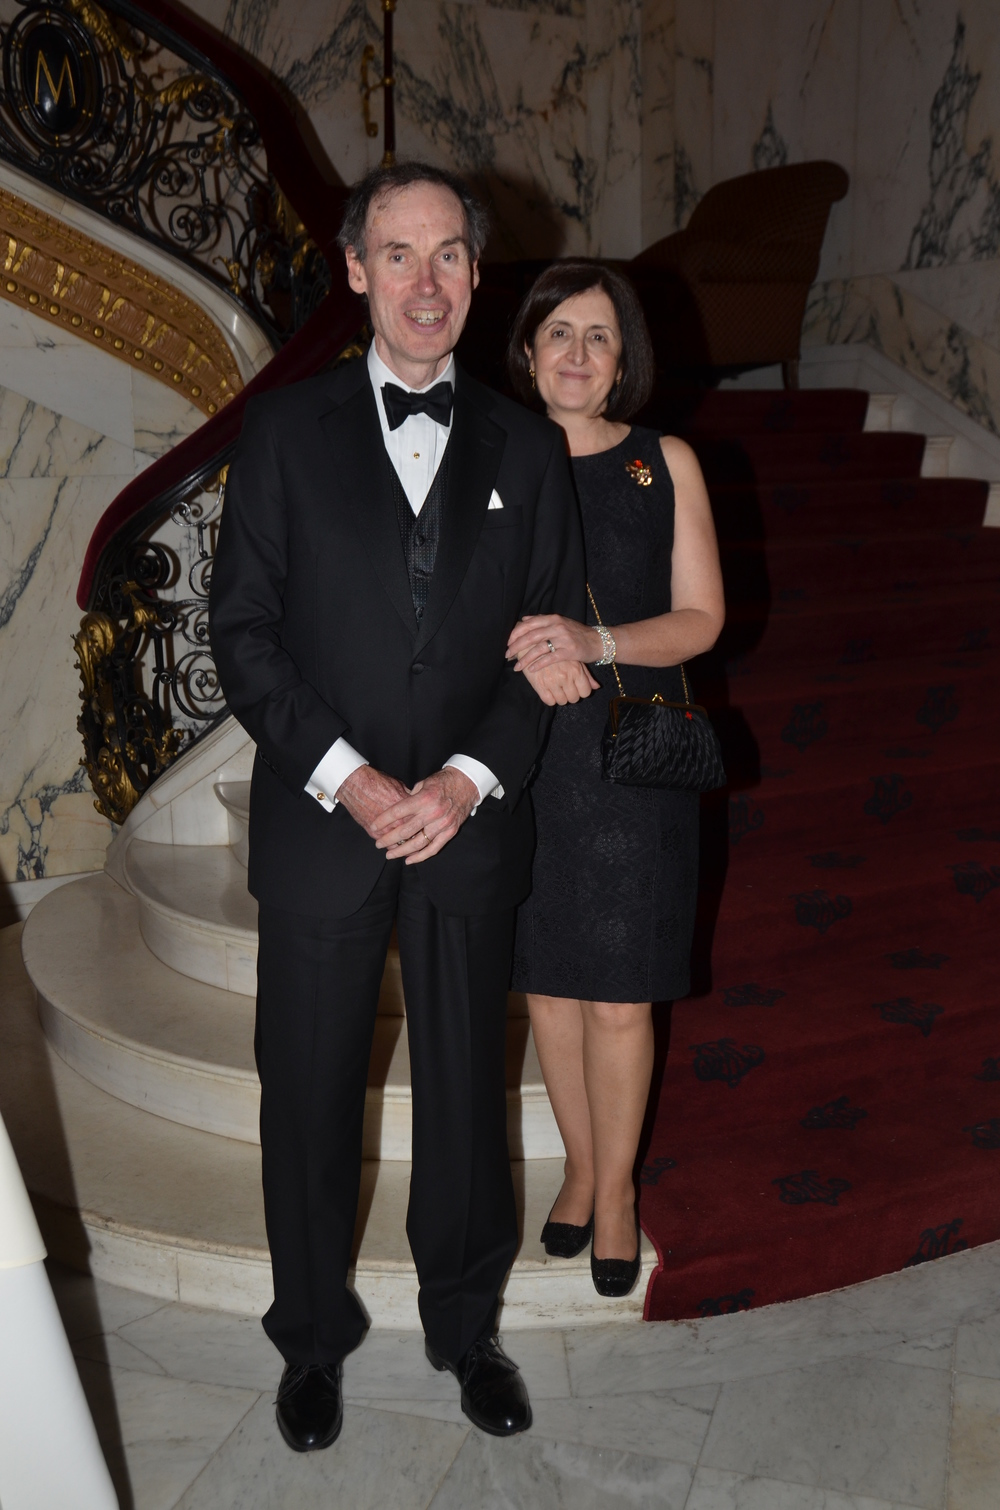 DSC_4732-Robert Murray, Rita Murray.JPG